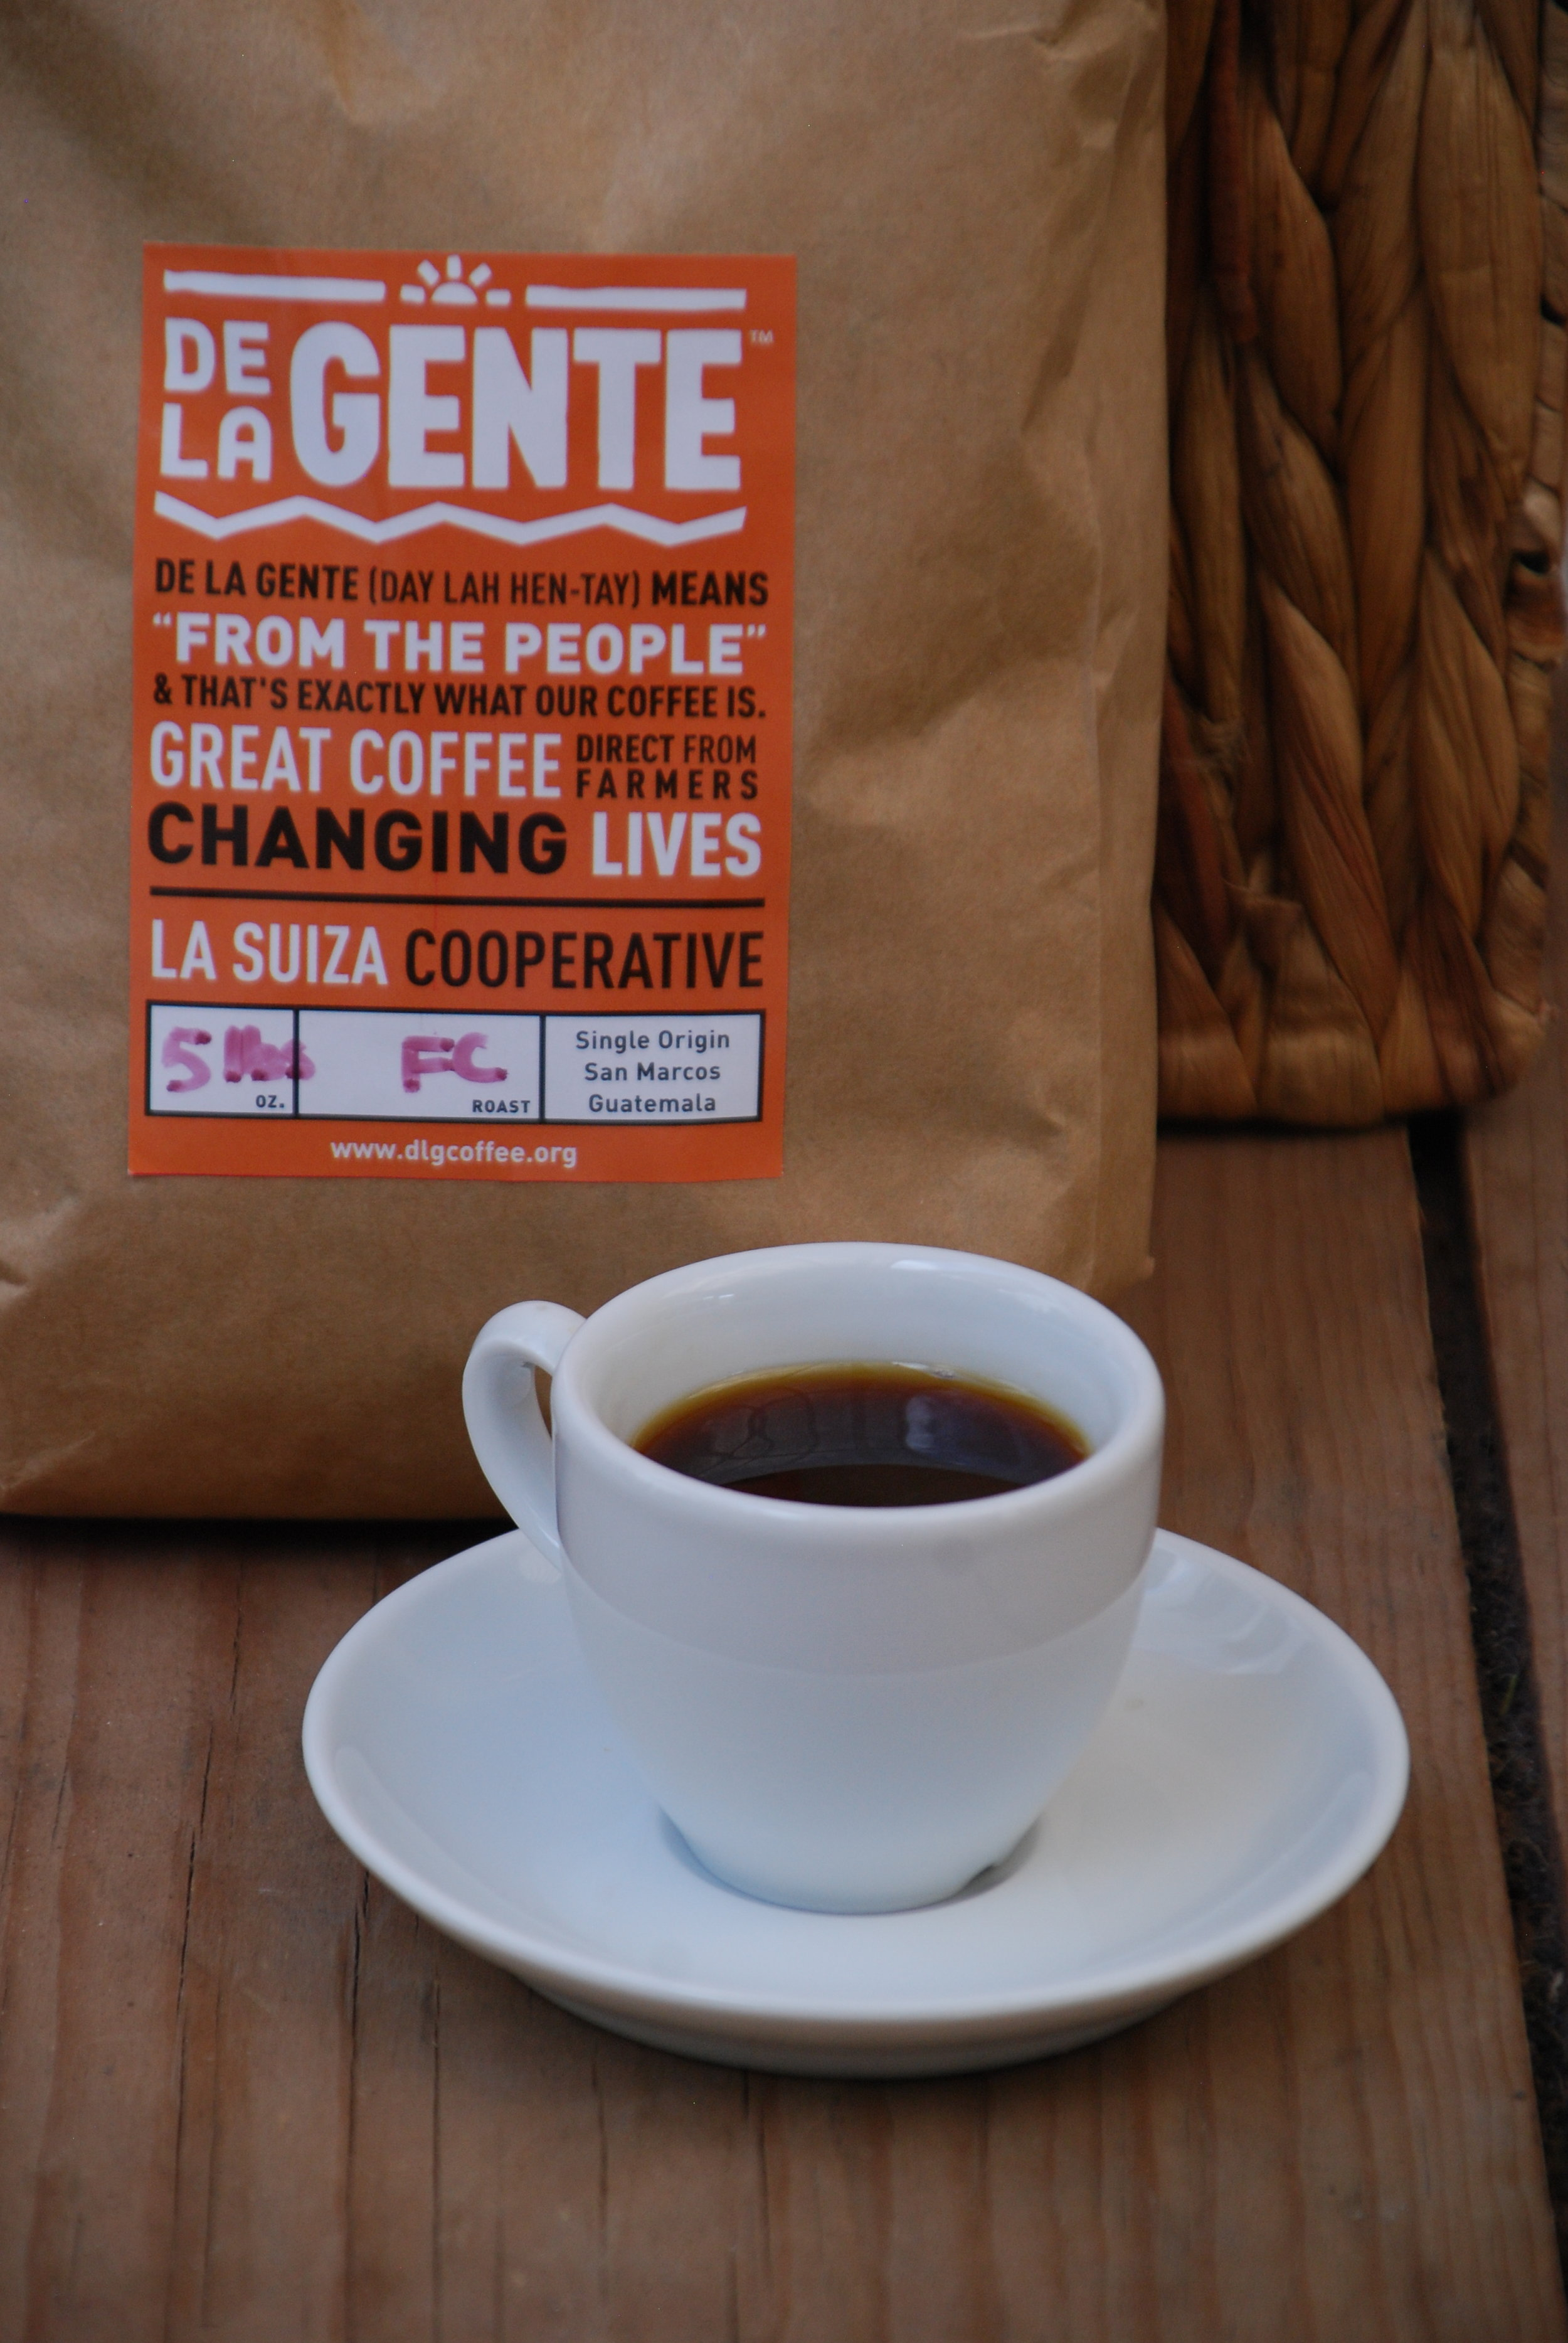 Cup of coffee from La Suiza